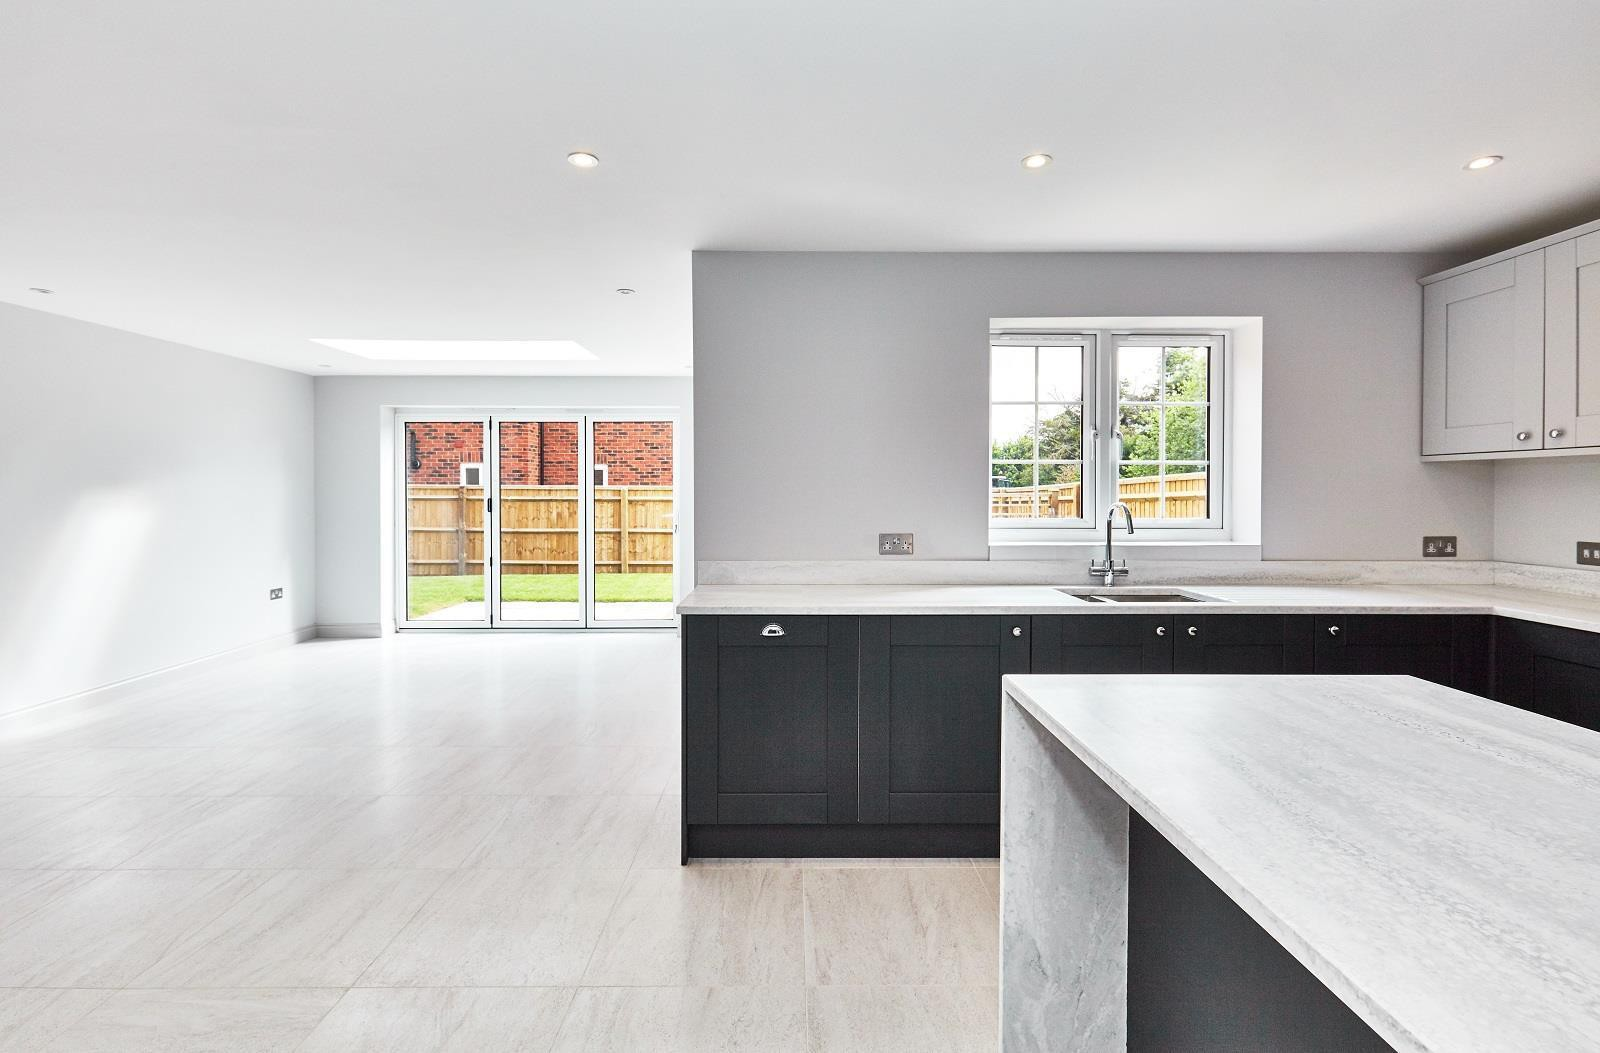 Chiltern Lodge - 4 bed detached, Reading, RG4 9QS